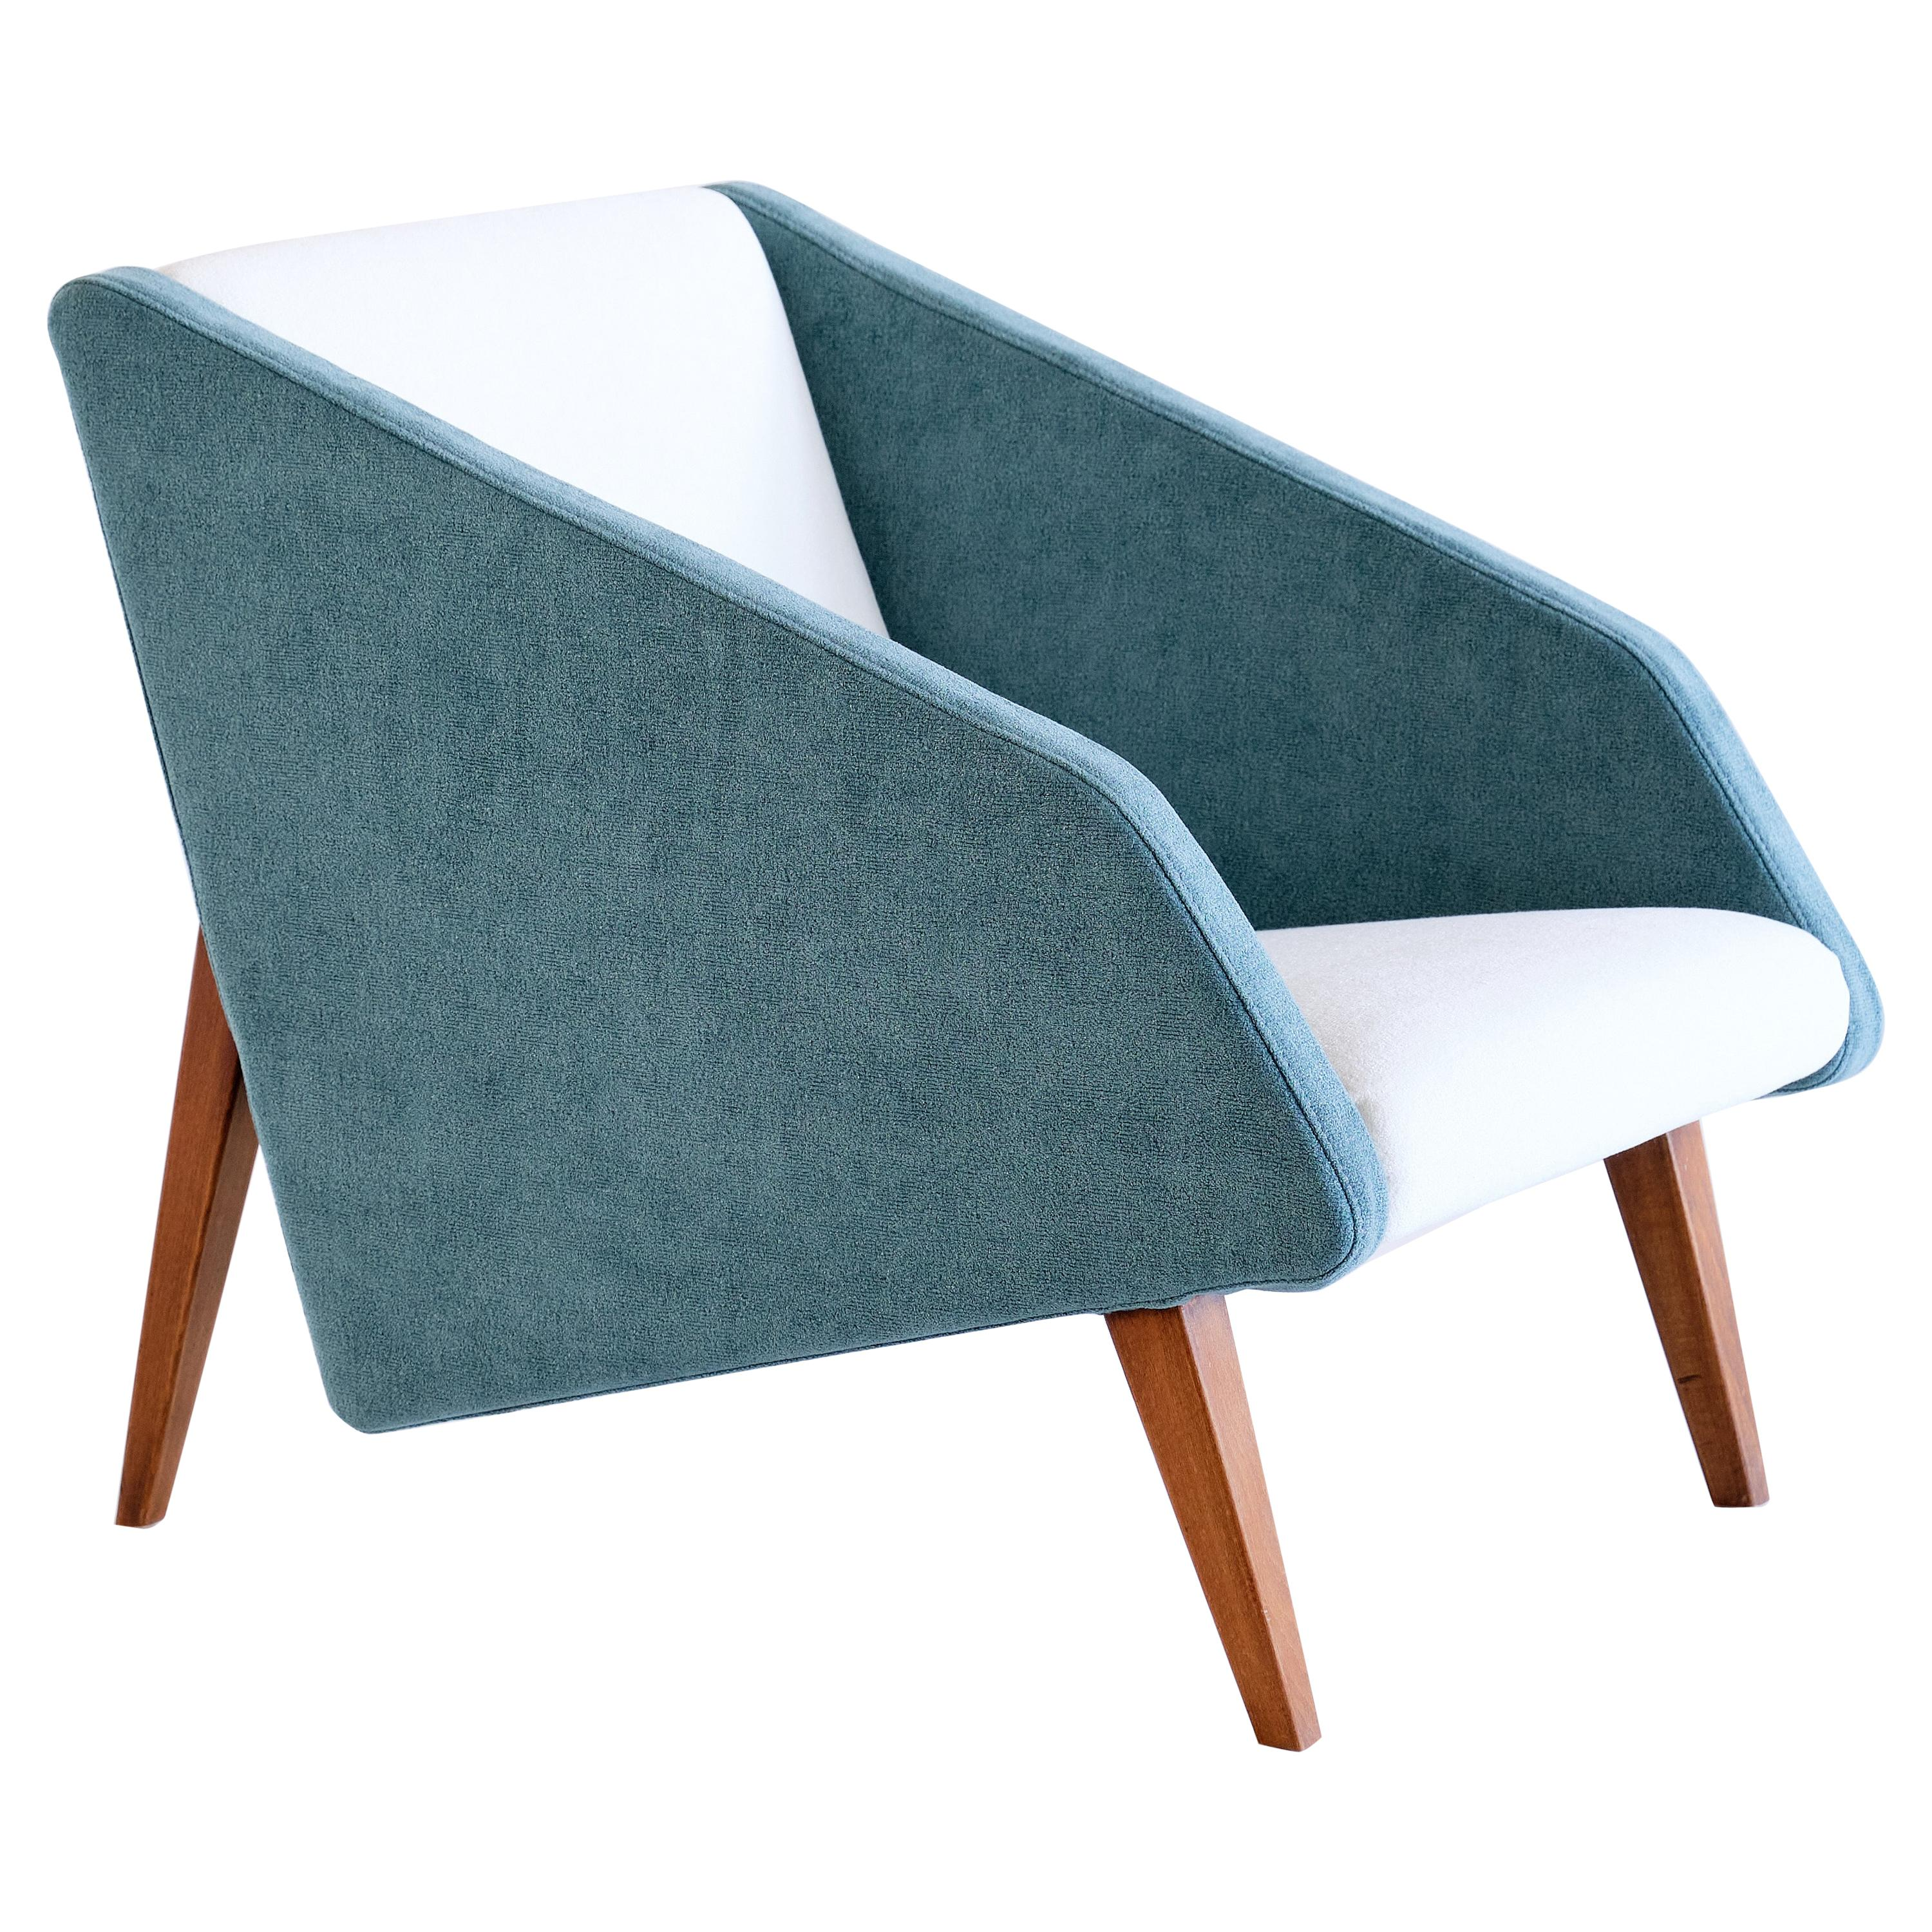 Gio Ponti Attributed Armchair in Lelièvre Fabric and Beech, Italy, Late, 1950s